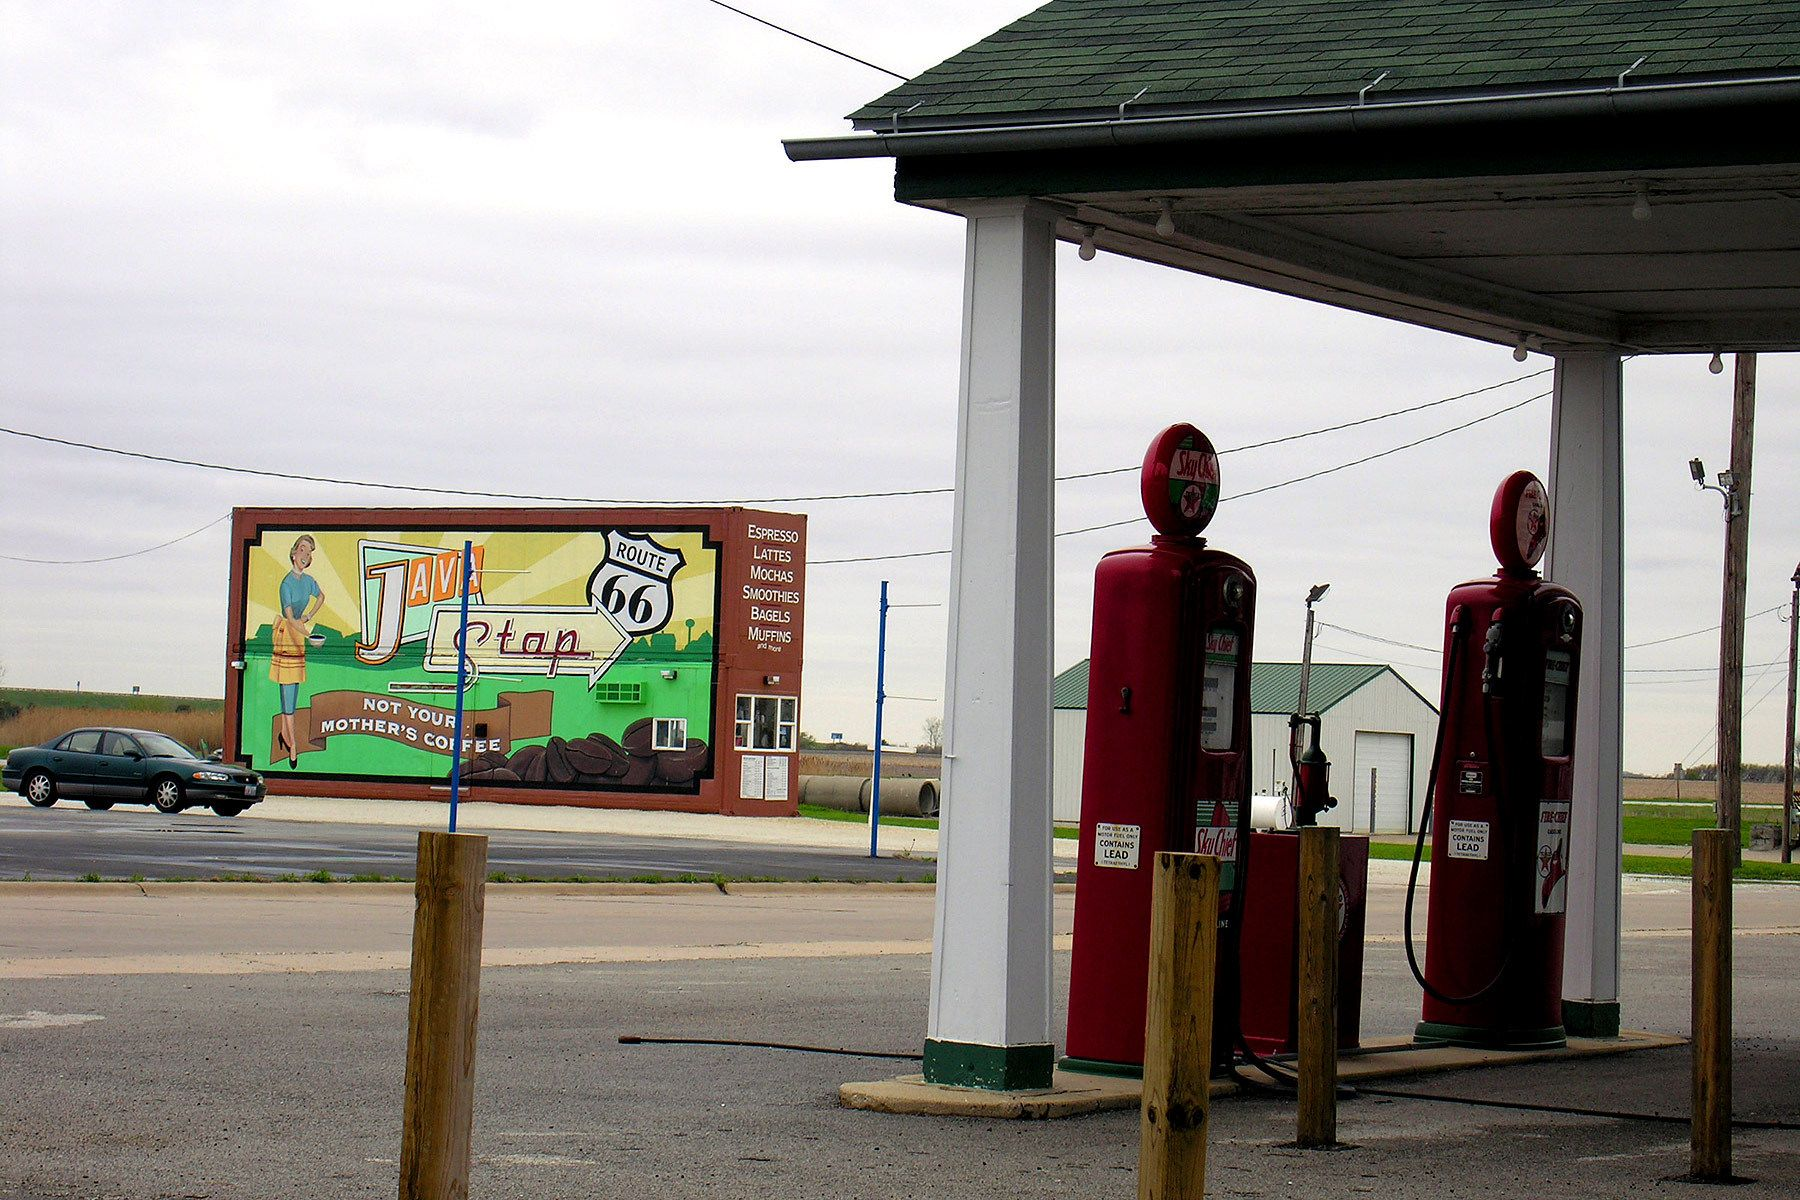 billboard, modern, route 66, café, Illinois